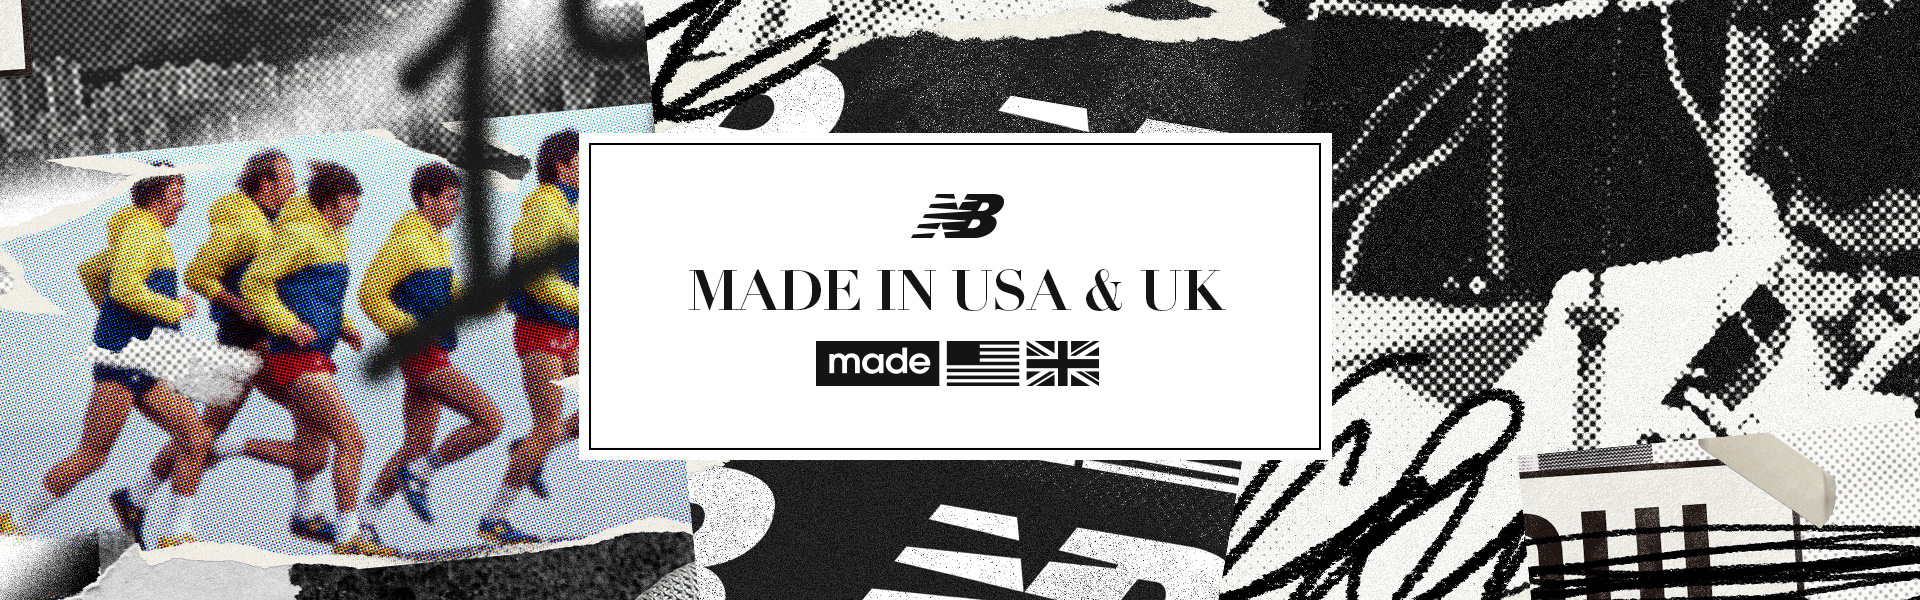 made in usa & uk